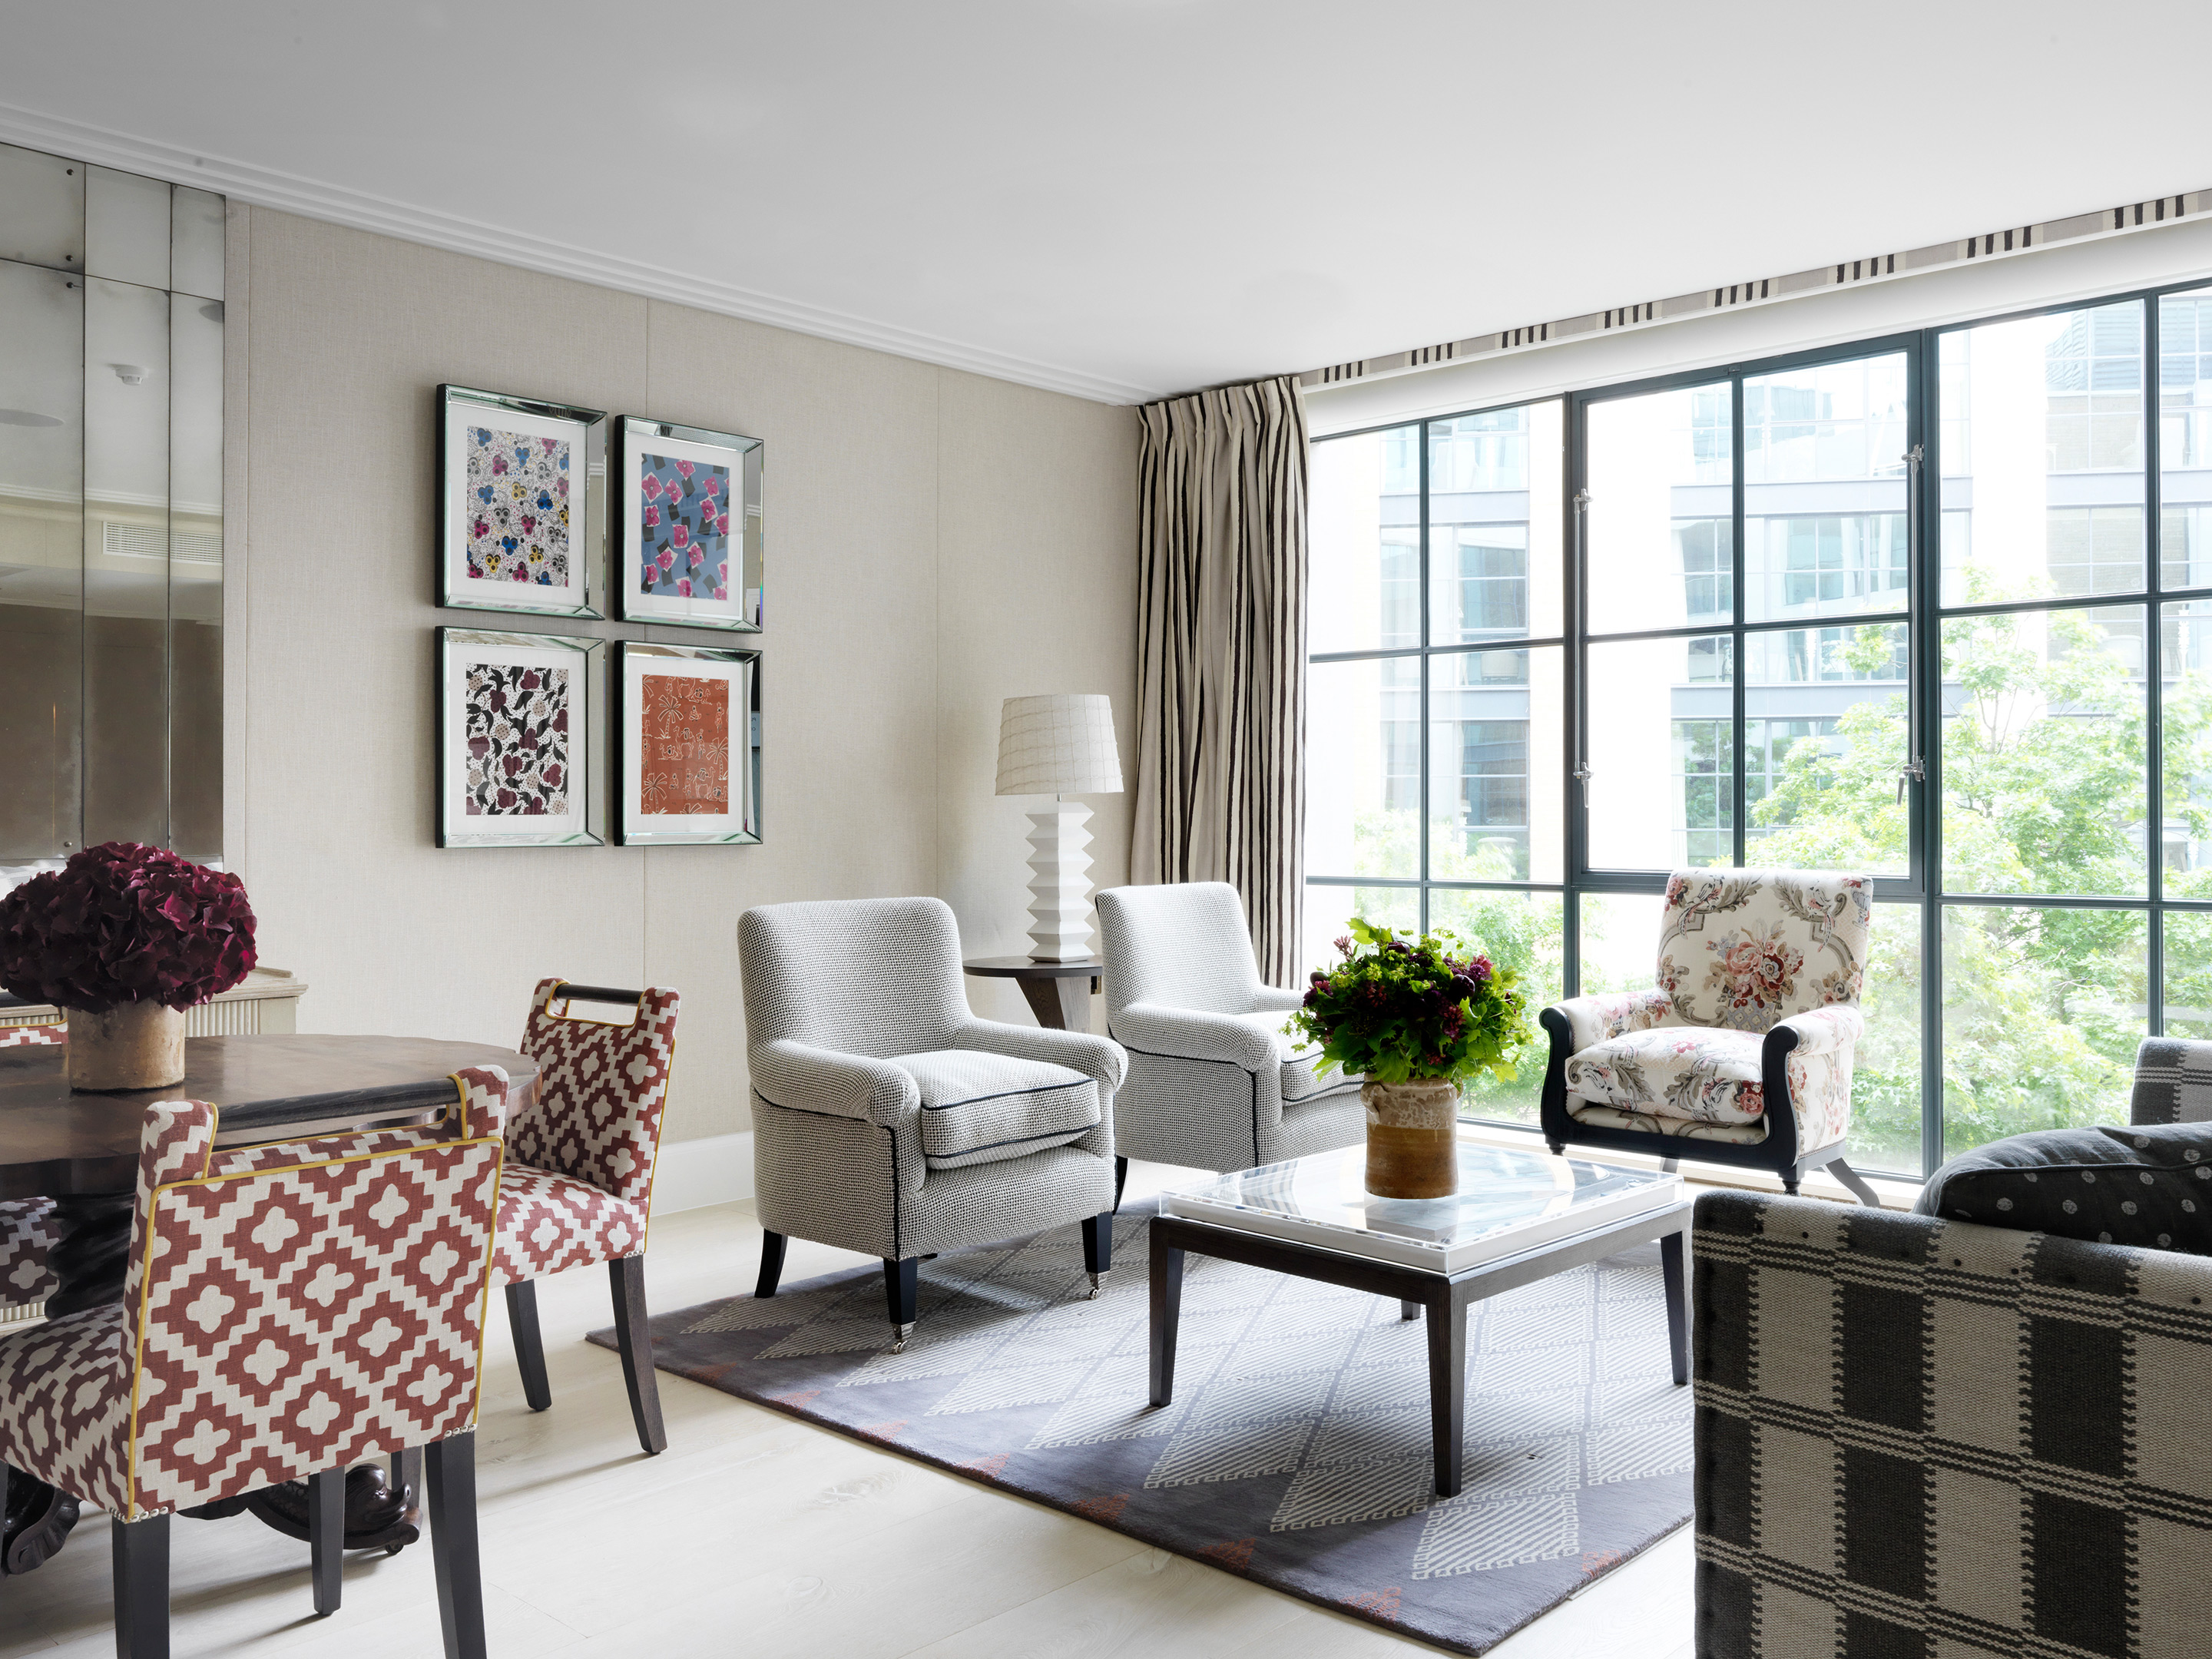 rooms suites at the ham yard hotel in london uk design hotels. Black Bedroom Furniture Sets. Home Design Ideas